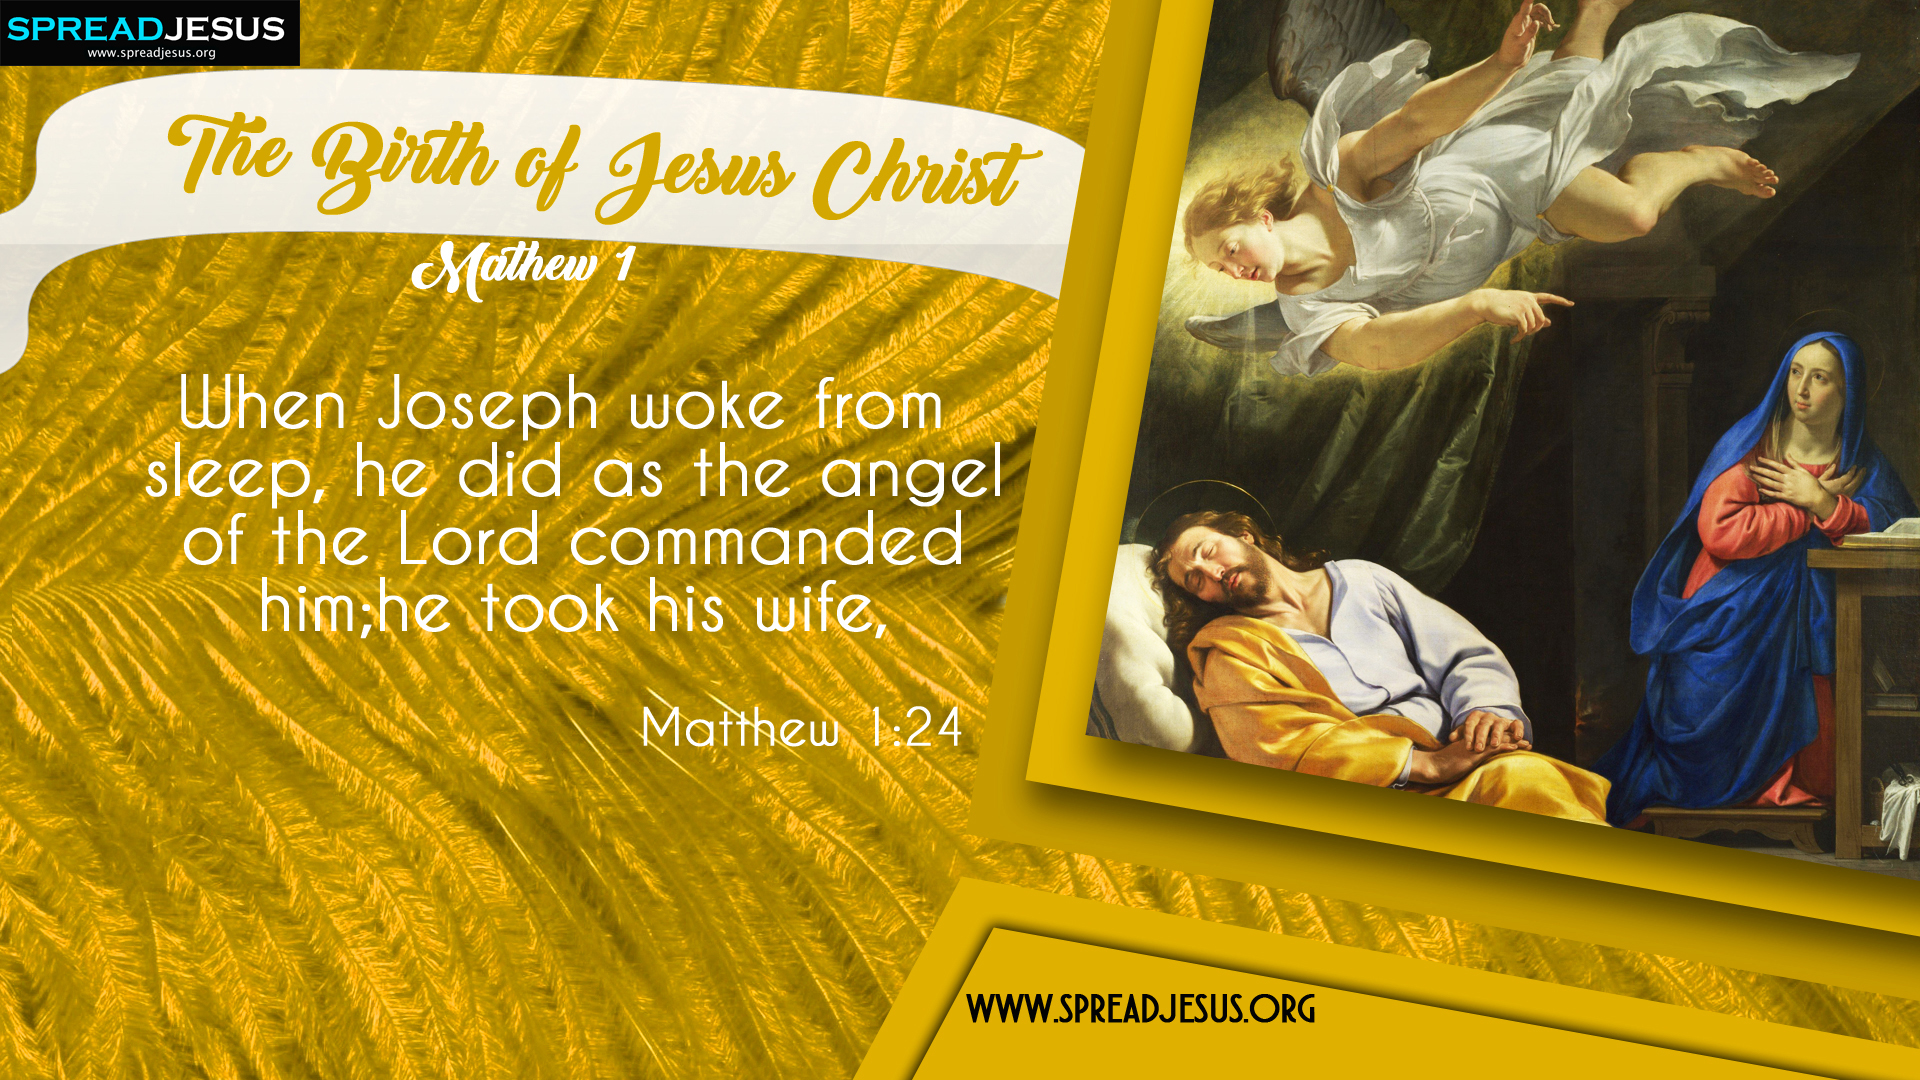 The Birth of Jesus Christ Matthew 1:24 HD-Wallpapers